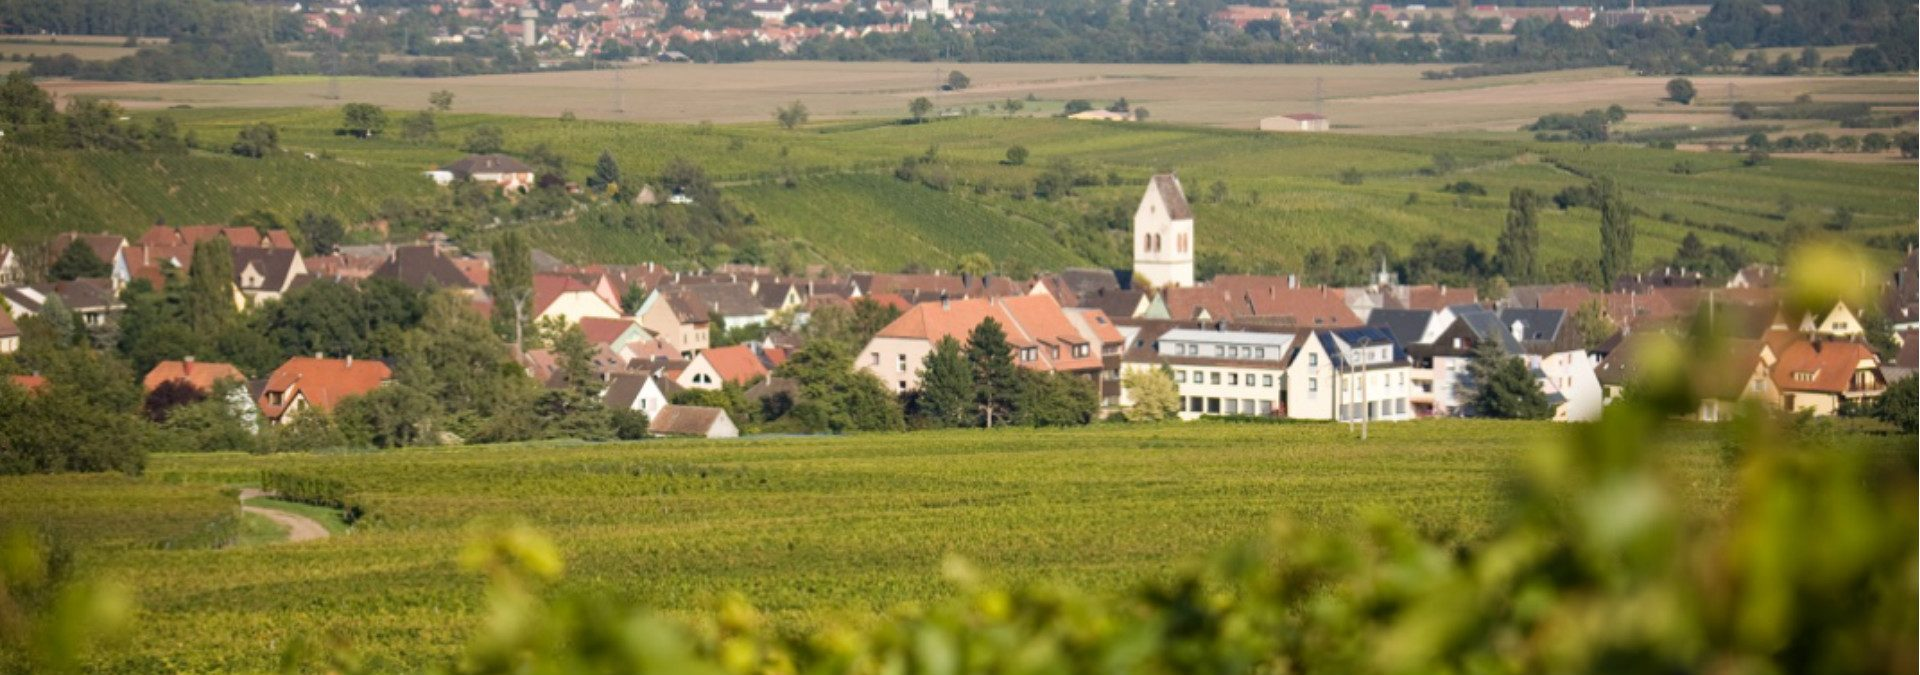 Domaine Berger